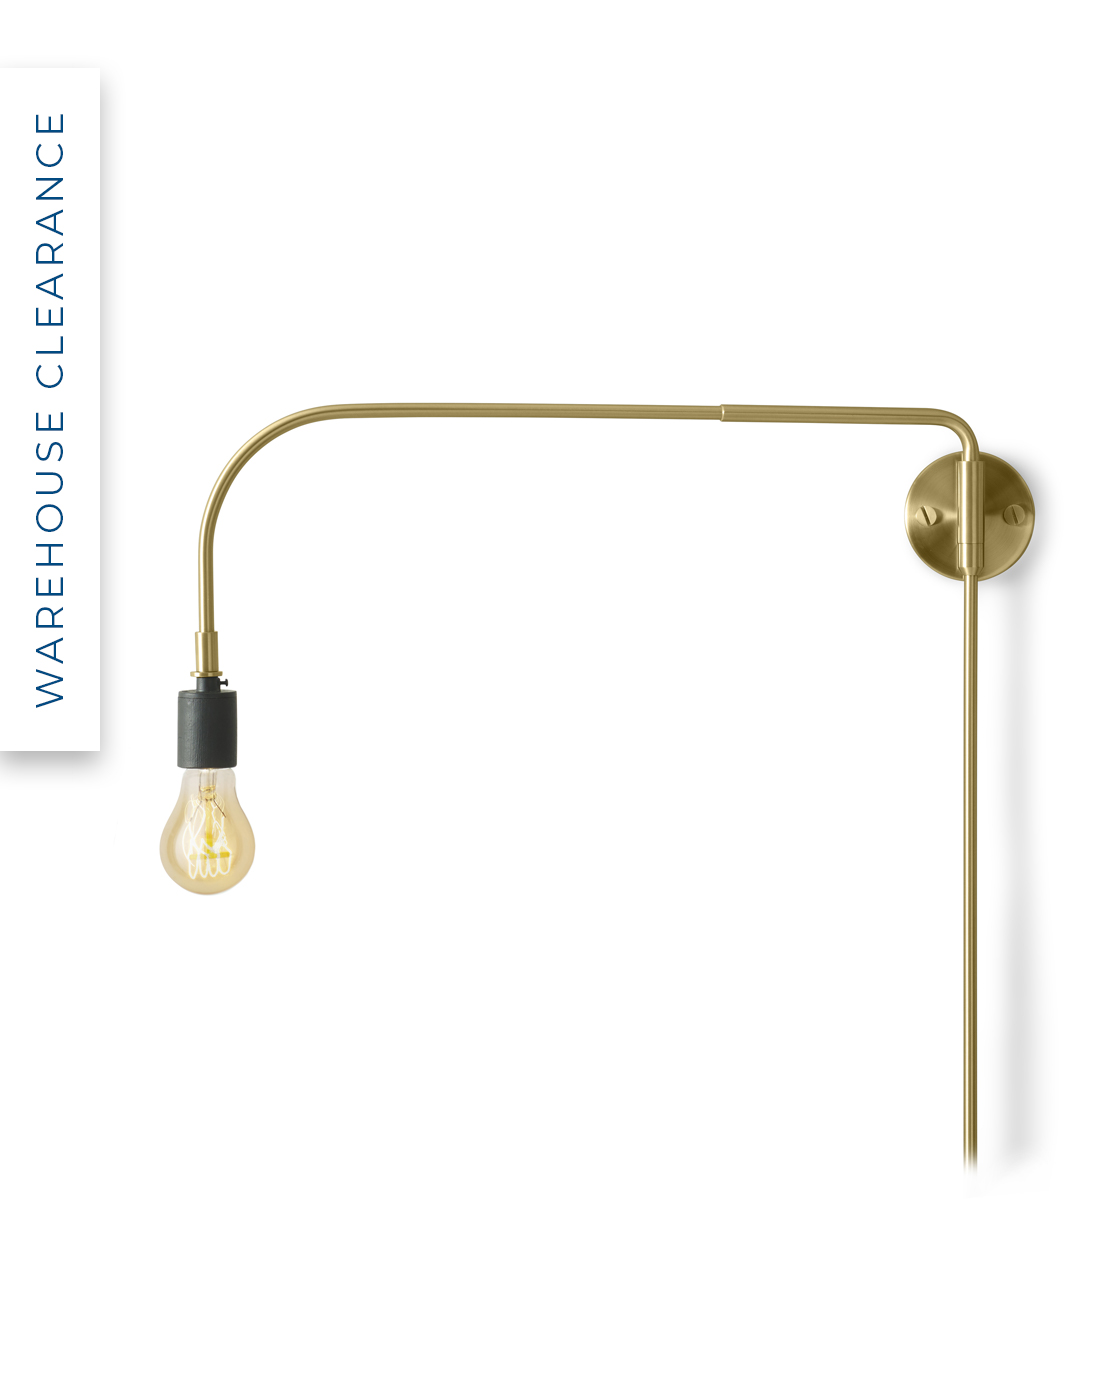 Warren wall light by Menu with 40% off